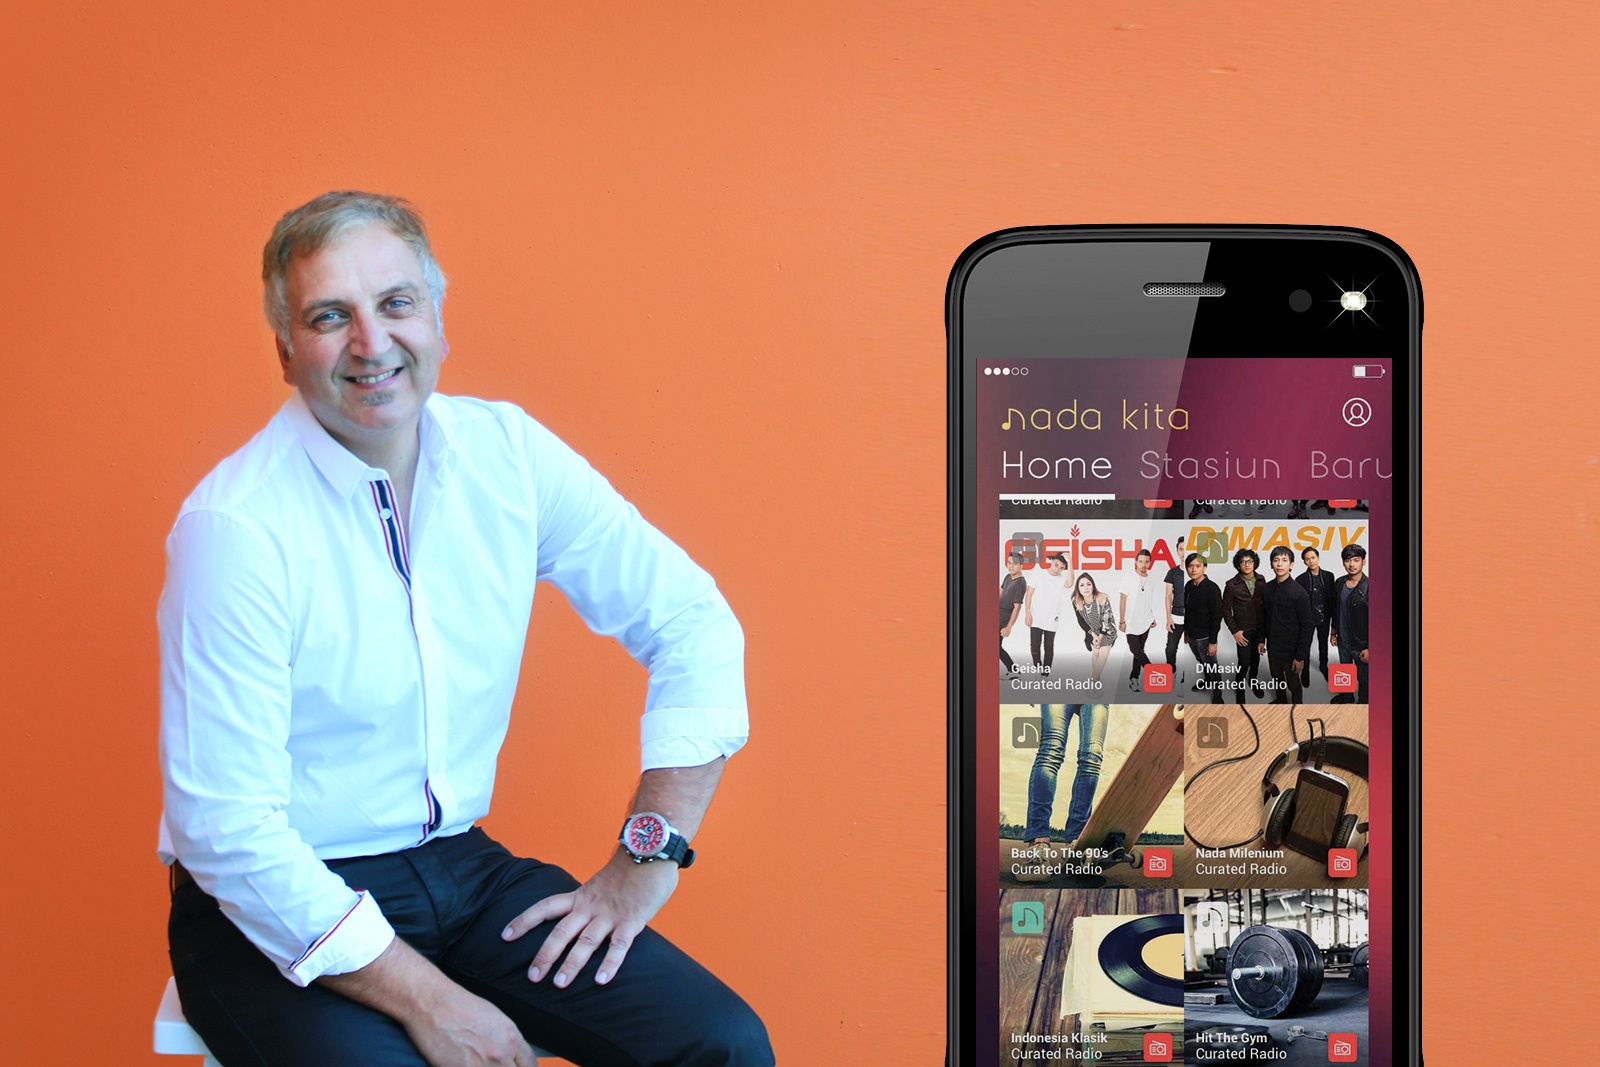 Nada Kita helps brands to engage with customers through music